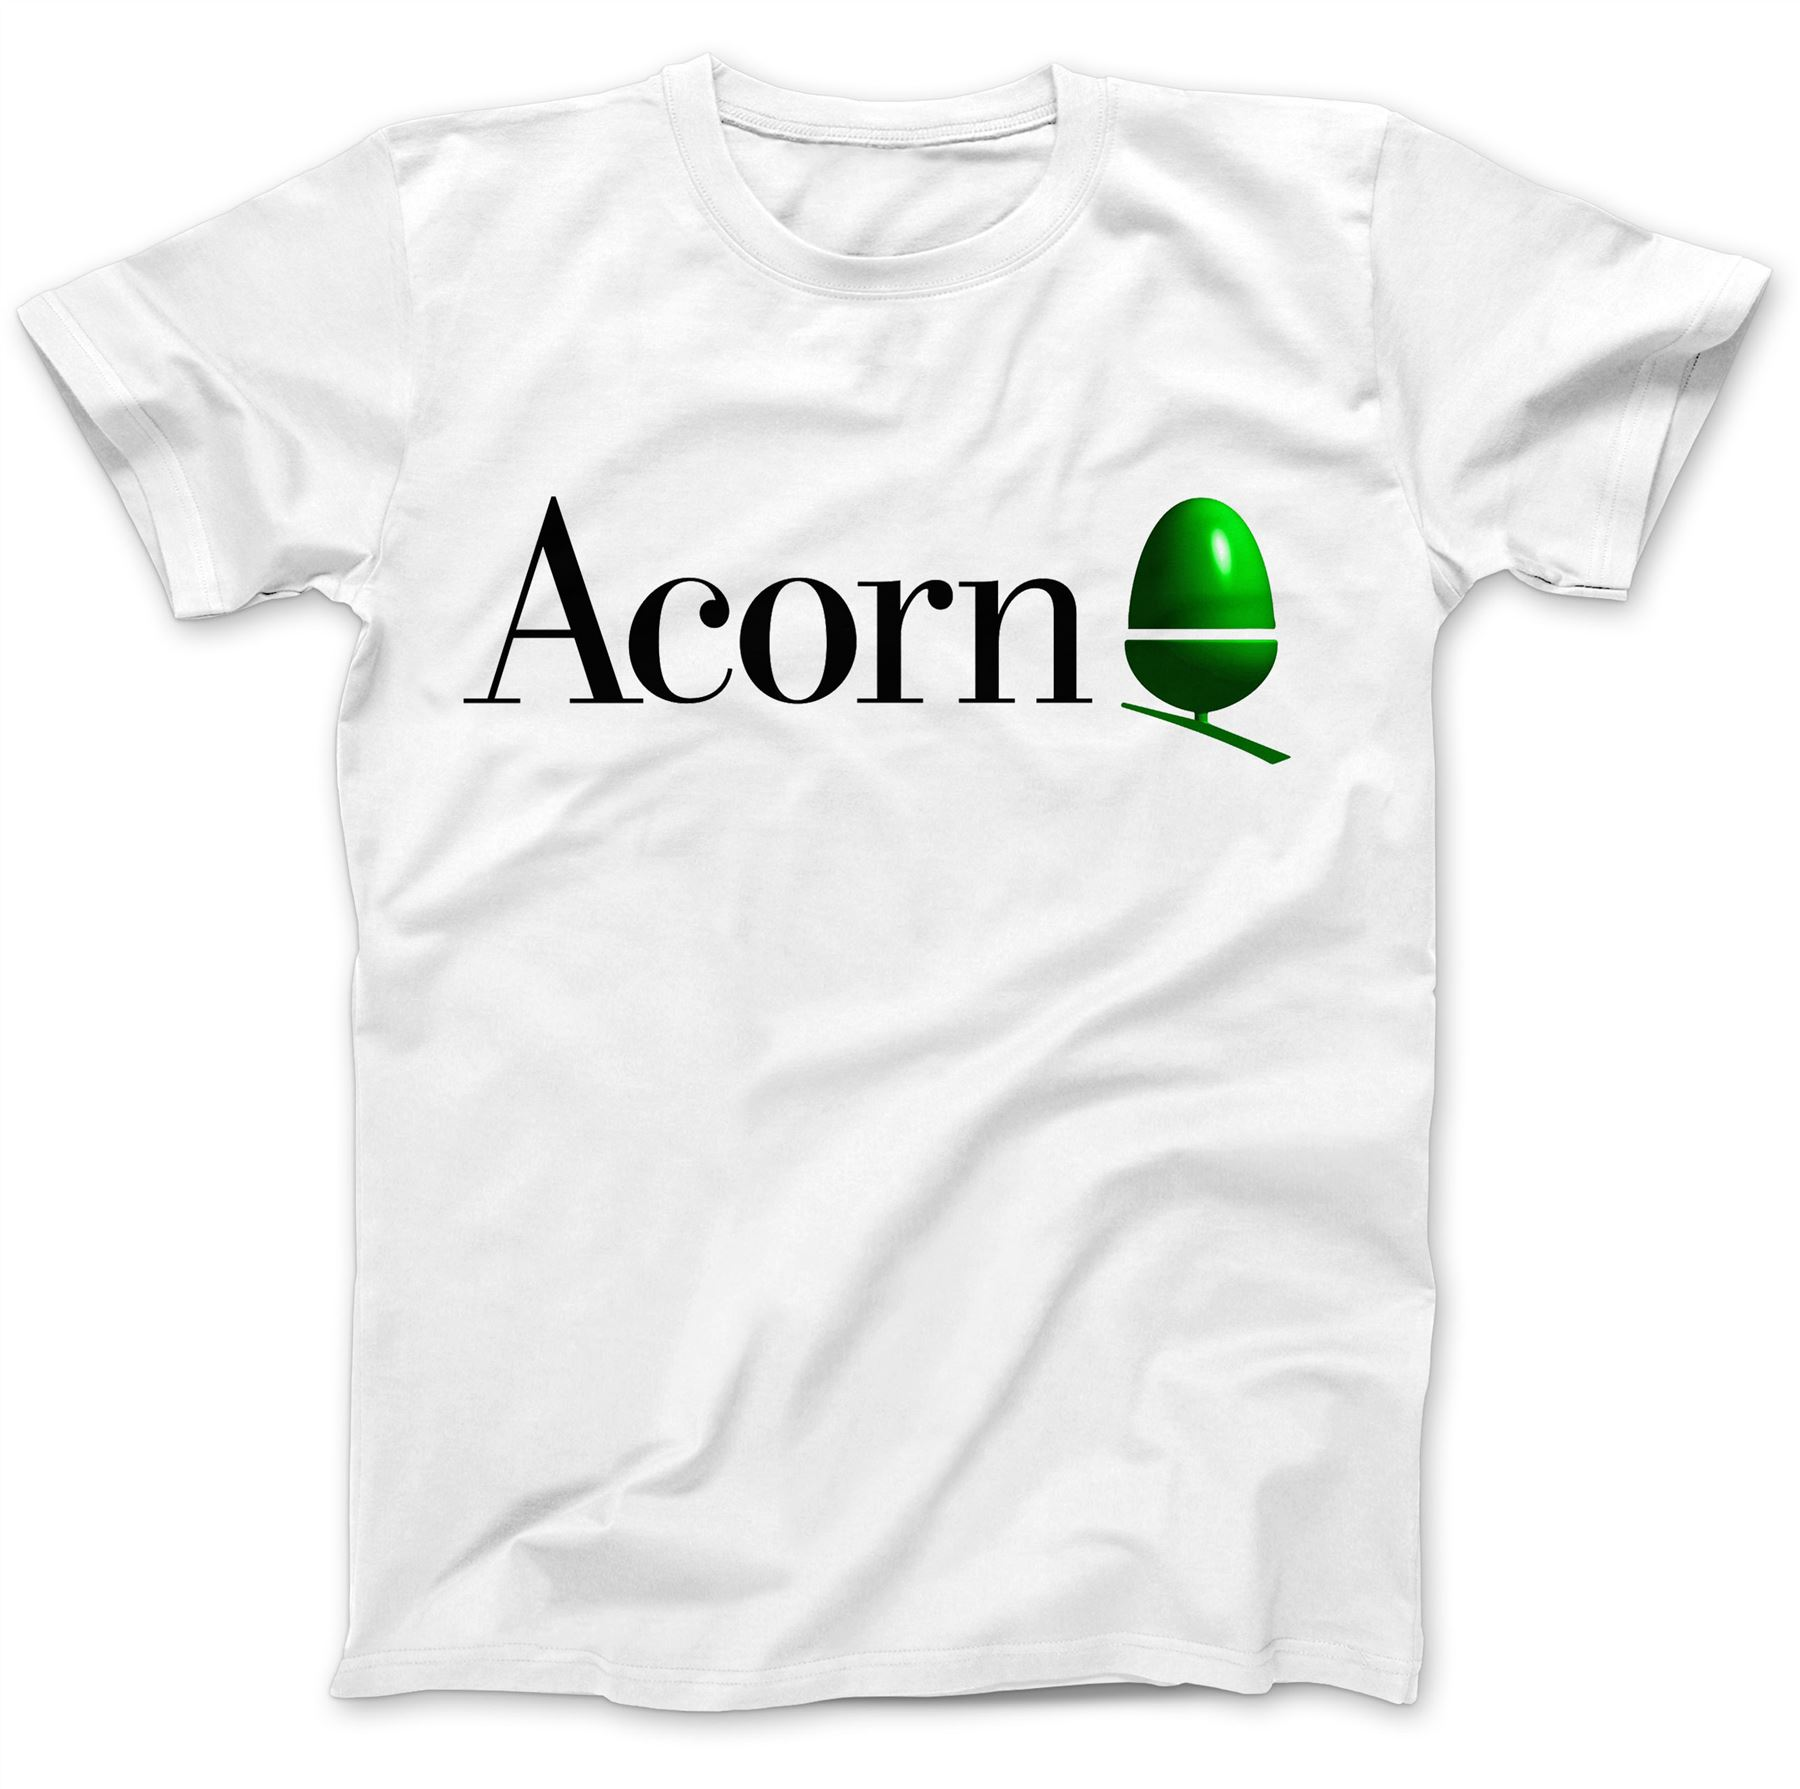 Inspired By Acorn Computers T-Shirt 100/% Premium Cotton Electron Archimedes